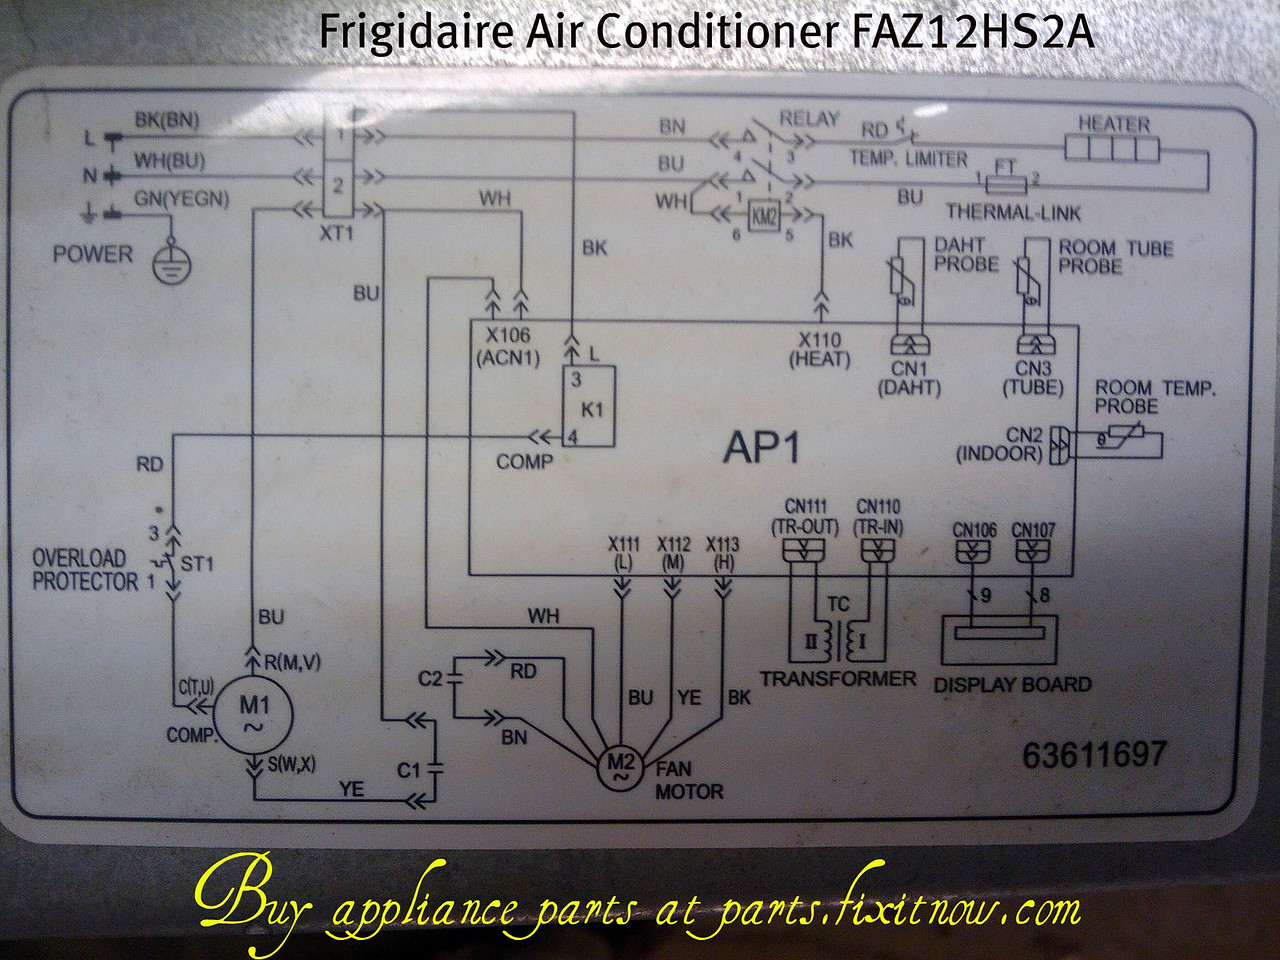 Wiring Diagram For Frigidaire Air Conditioner readingratnet